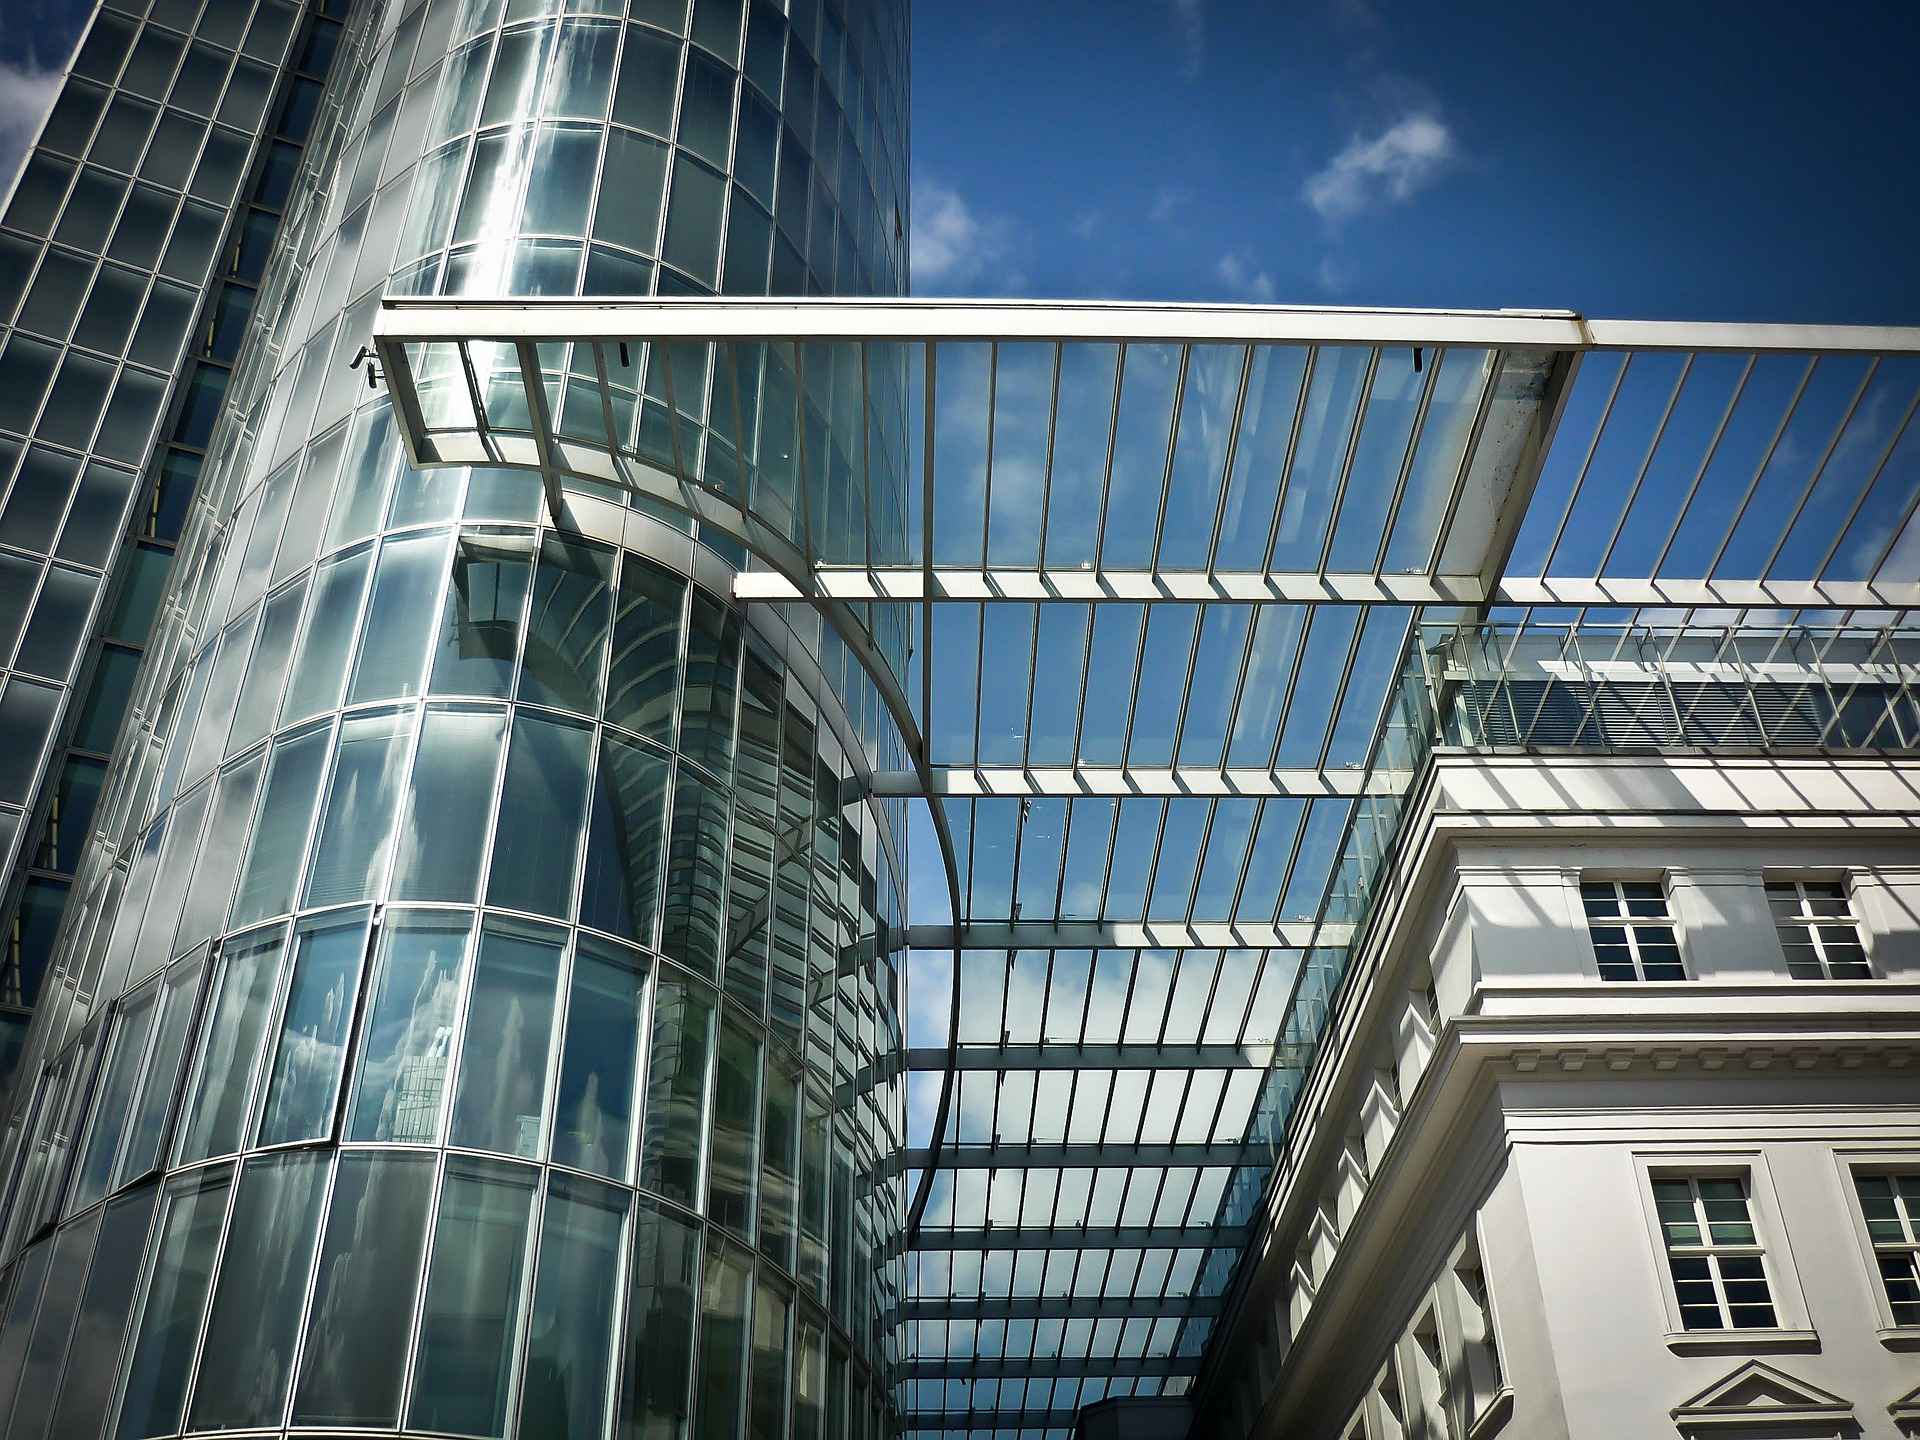 Tall office buildings with lots of glass windows representing the place to find a mentor to become a mortgage broker